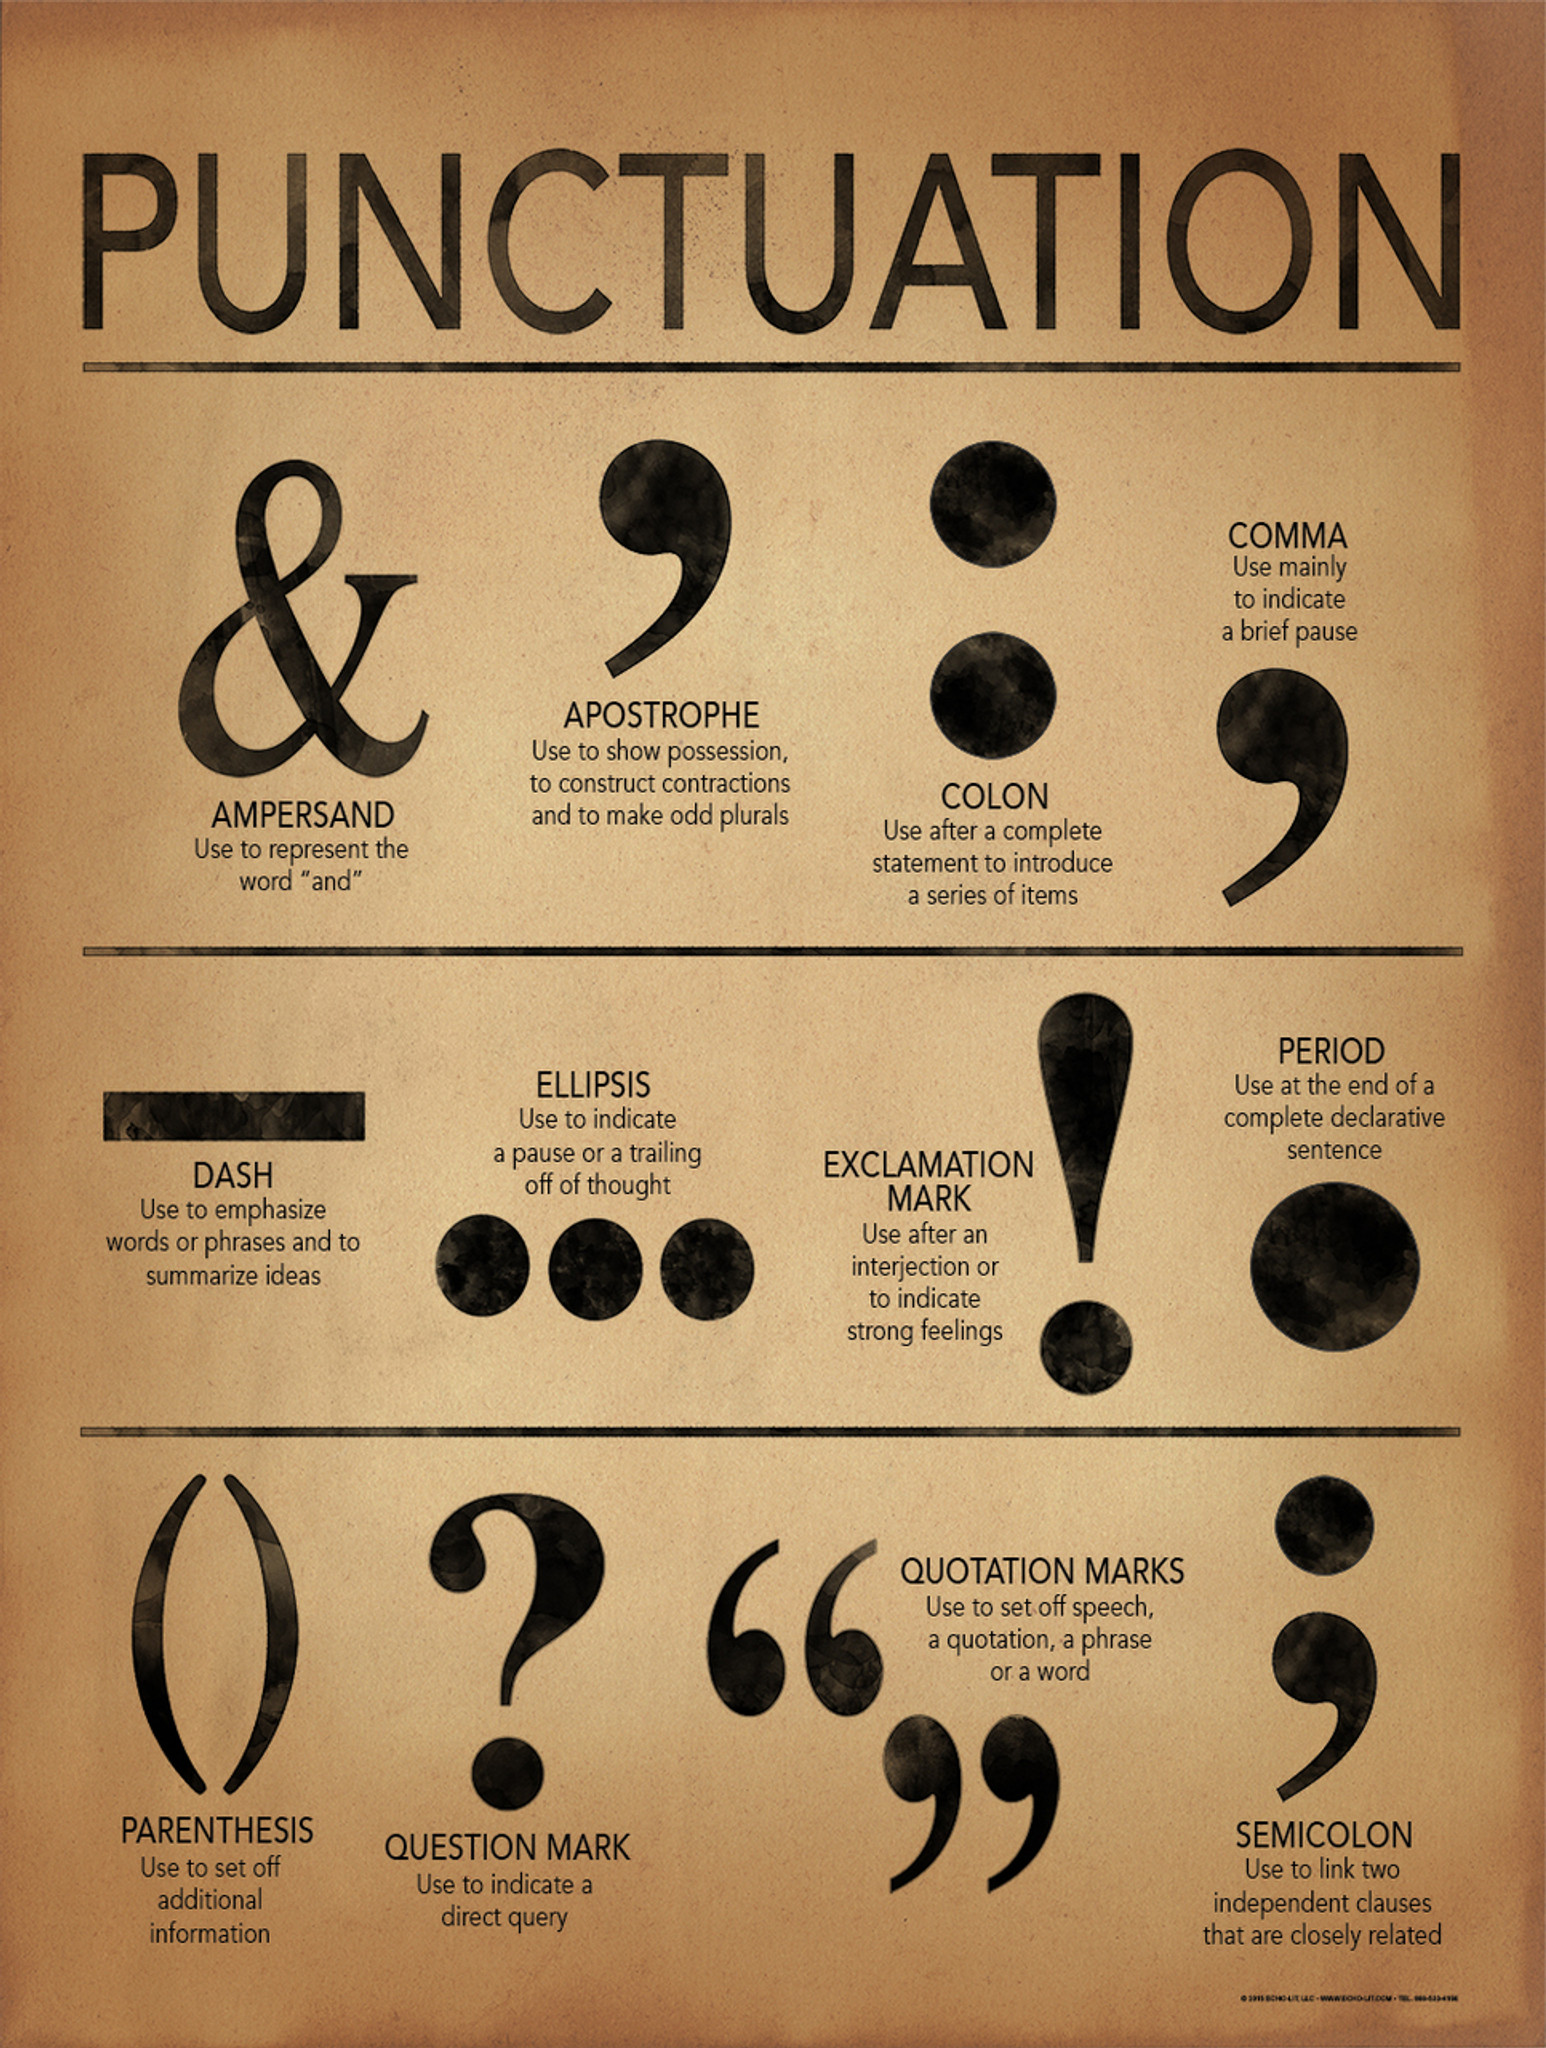 punctuation grammar and writing poster for home office or classroom typography art print